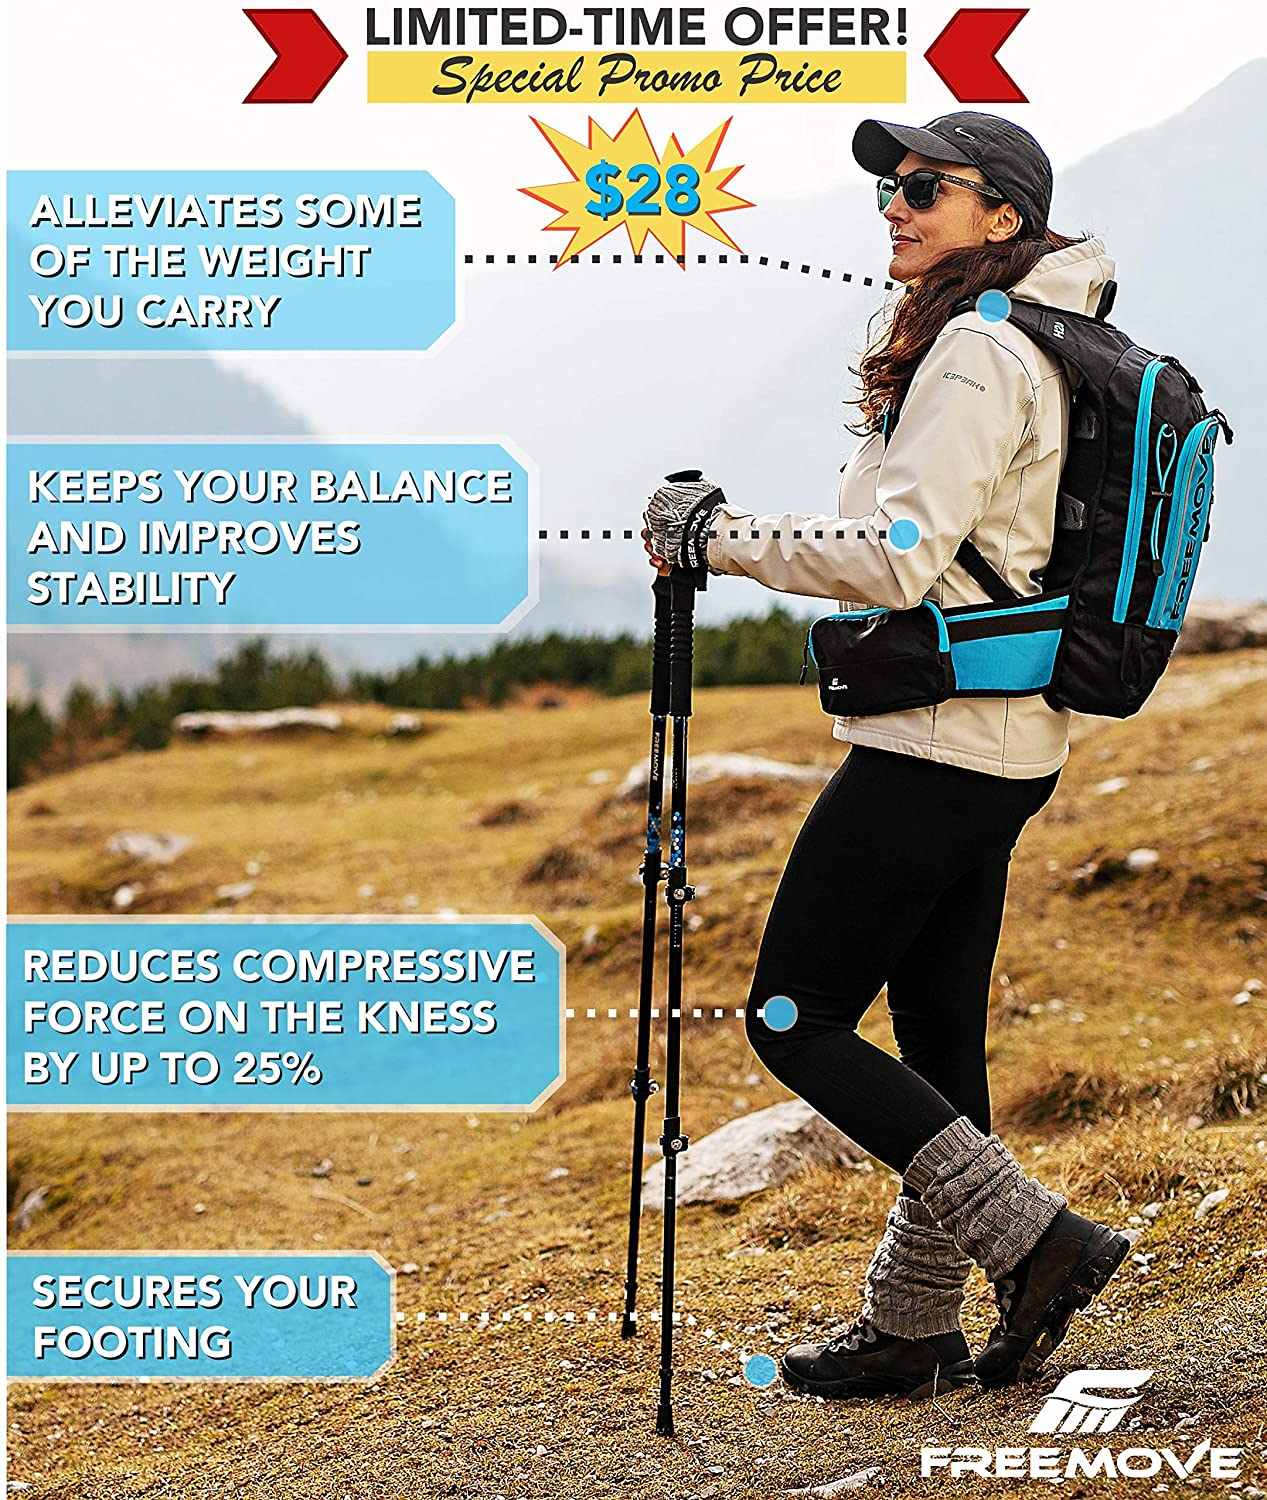 FREEMOVE Trekking Poles Collapsible, Lightweight Ultra Strong Aluminum 7075 Sticks for Hiking and Walking with Cork Grips, Quick Locks, Fully Equipped Accessories Gear for Men and Women